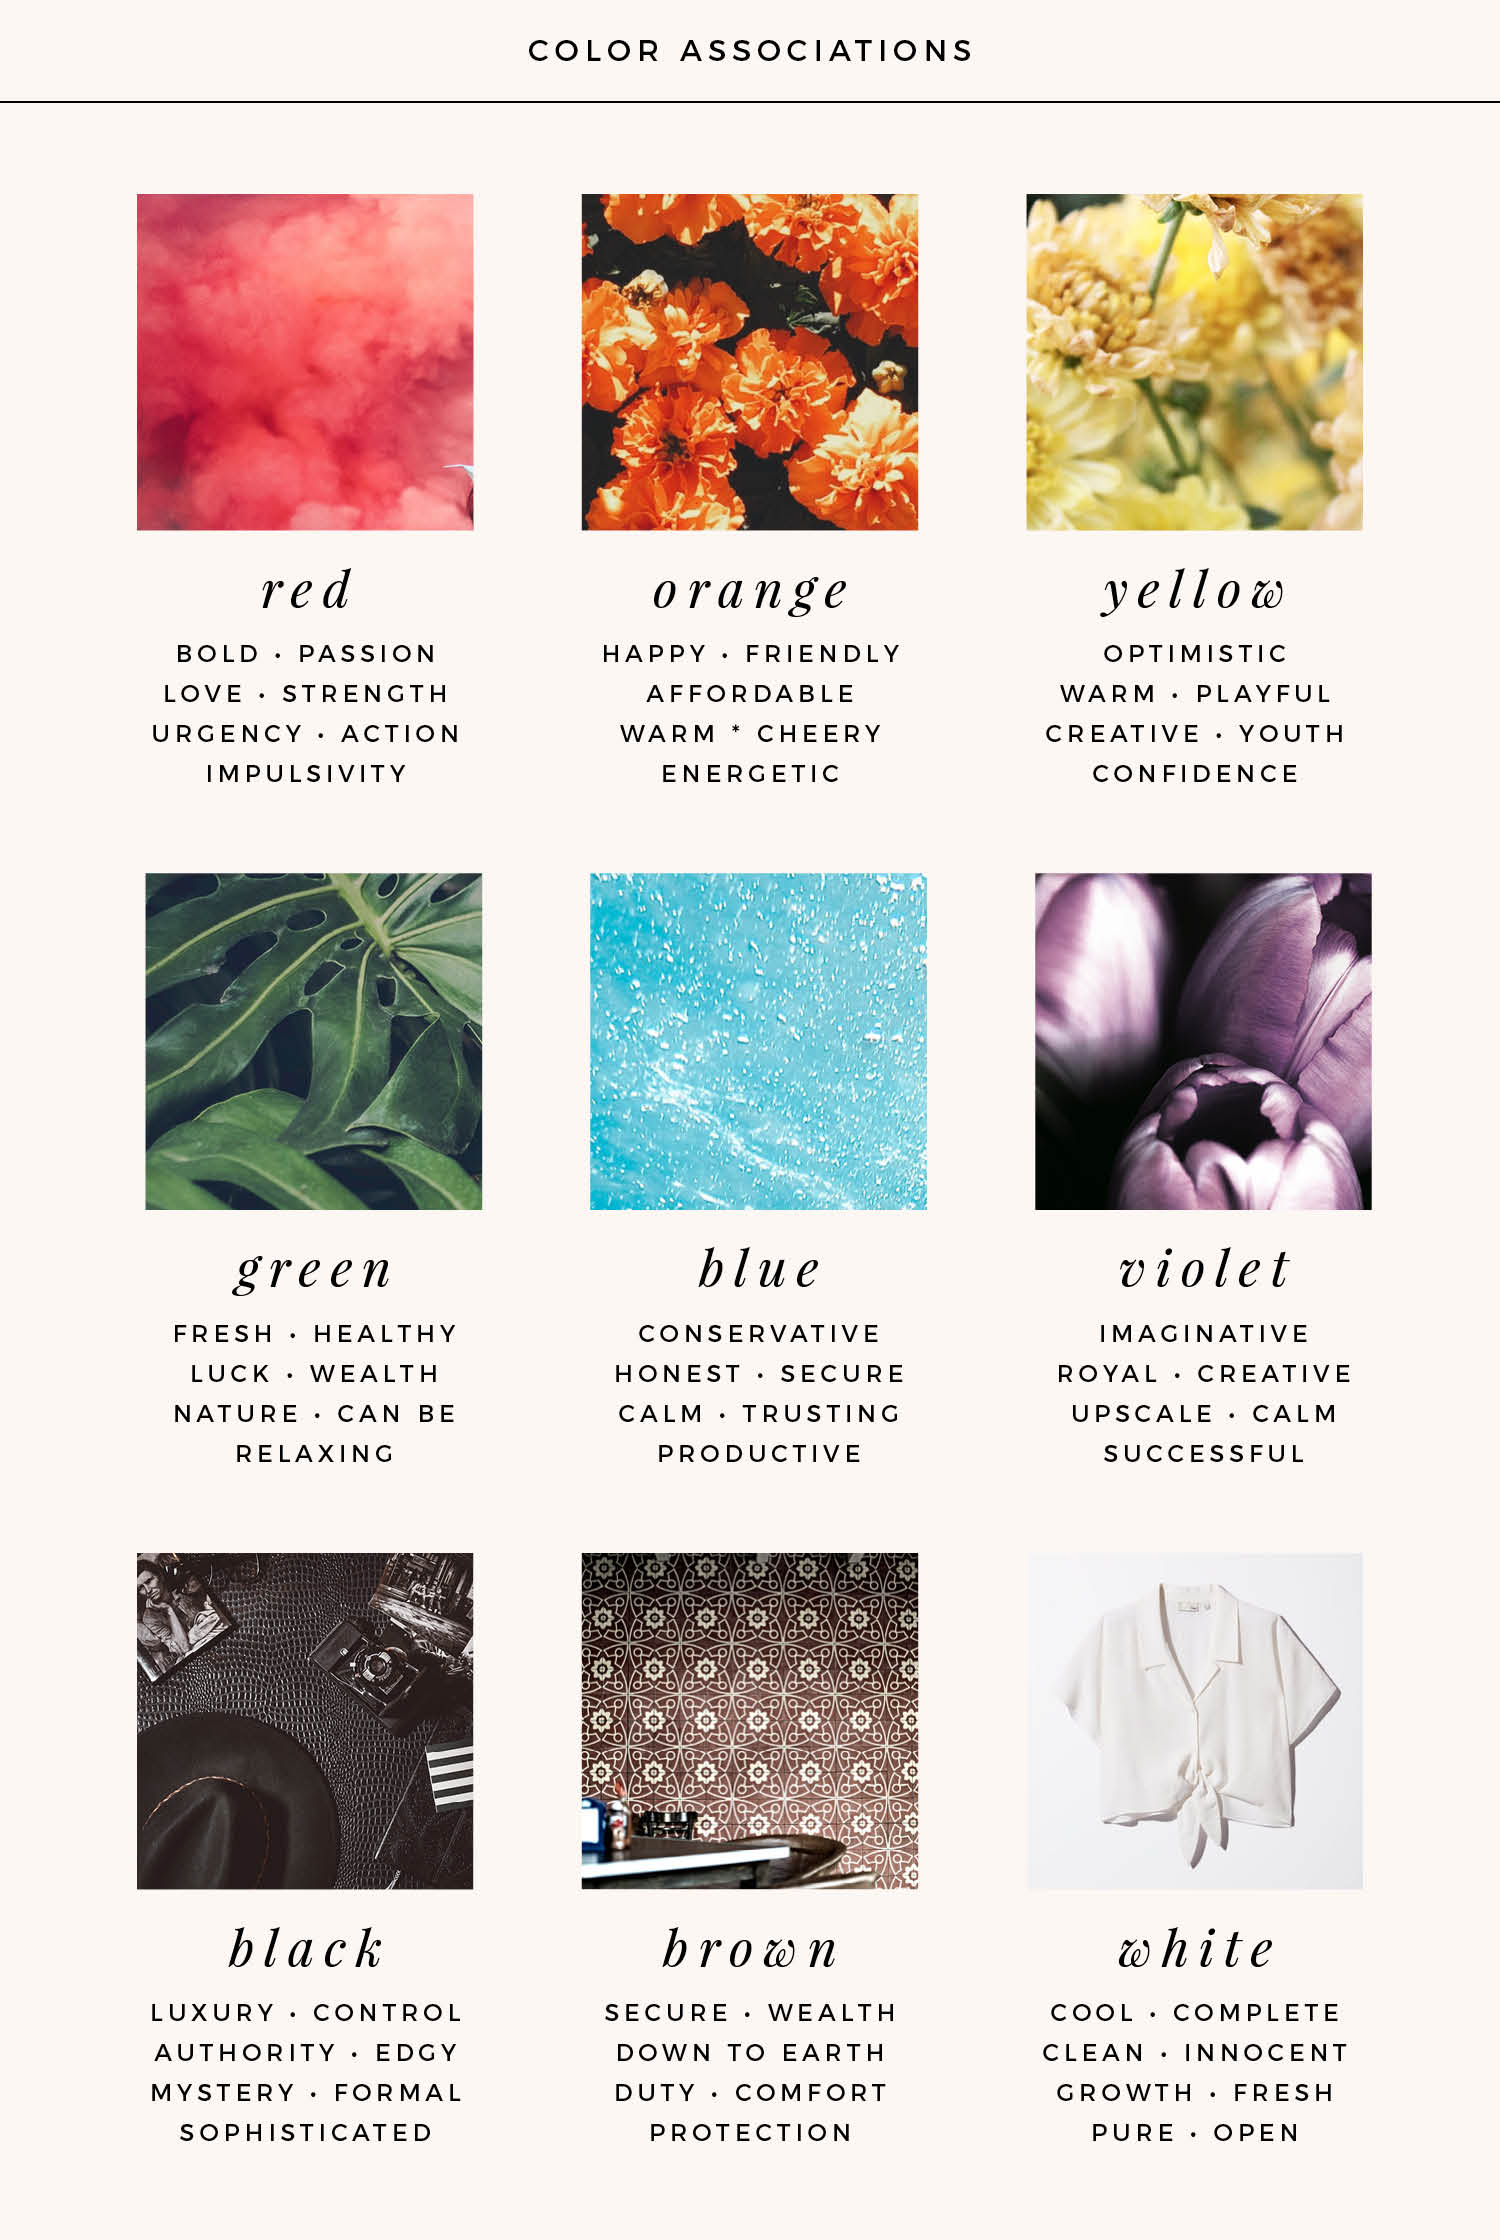 Colors play into human emotion // Here are some common color associations to help you determine the best colors for your brand!